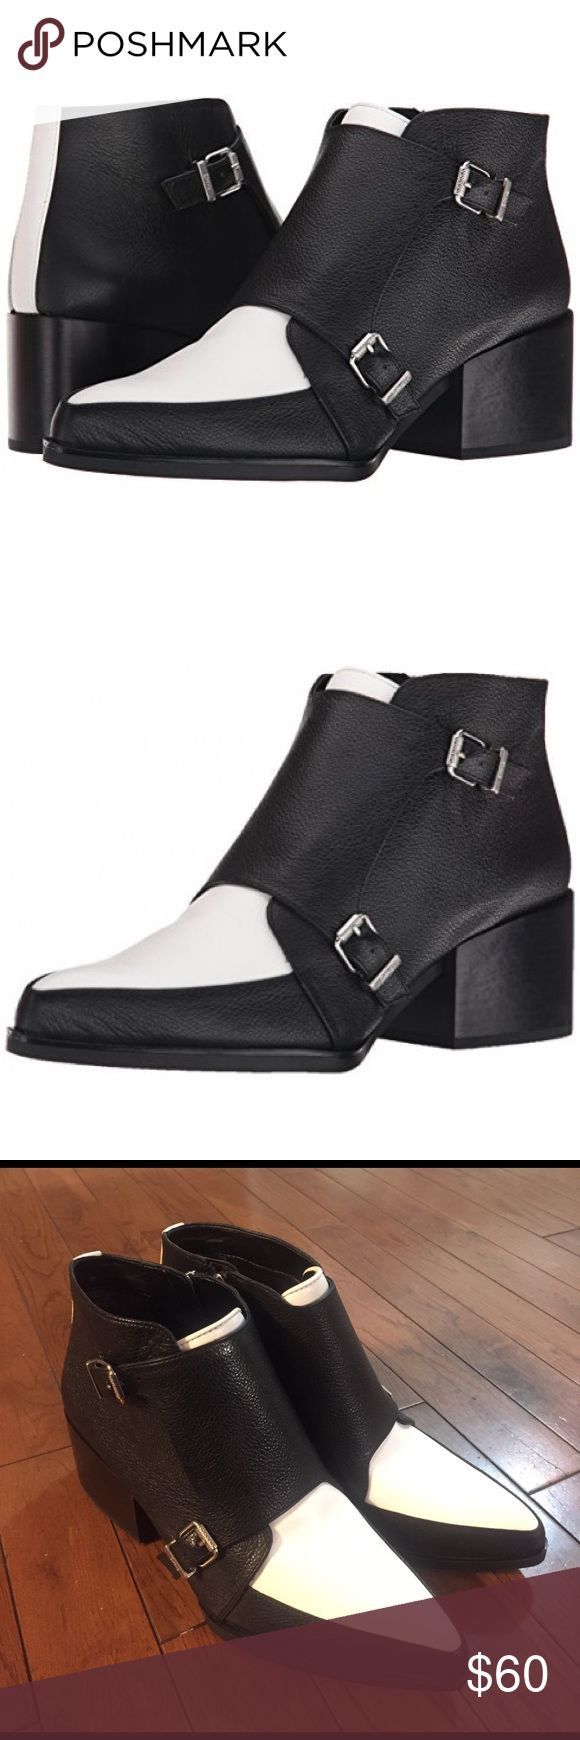 • SAM EDELMAN • booties NWOT Circus by Sam Edelman black and white booties. Size 7. Perfect condition- as seen in photos! Remember to bundle & save 15%! 💕 Open to reasonable offers! Circus by Sam Edelman Shoes Ankle Boots & Booties